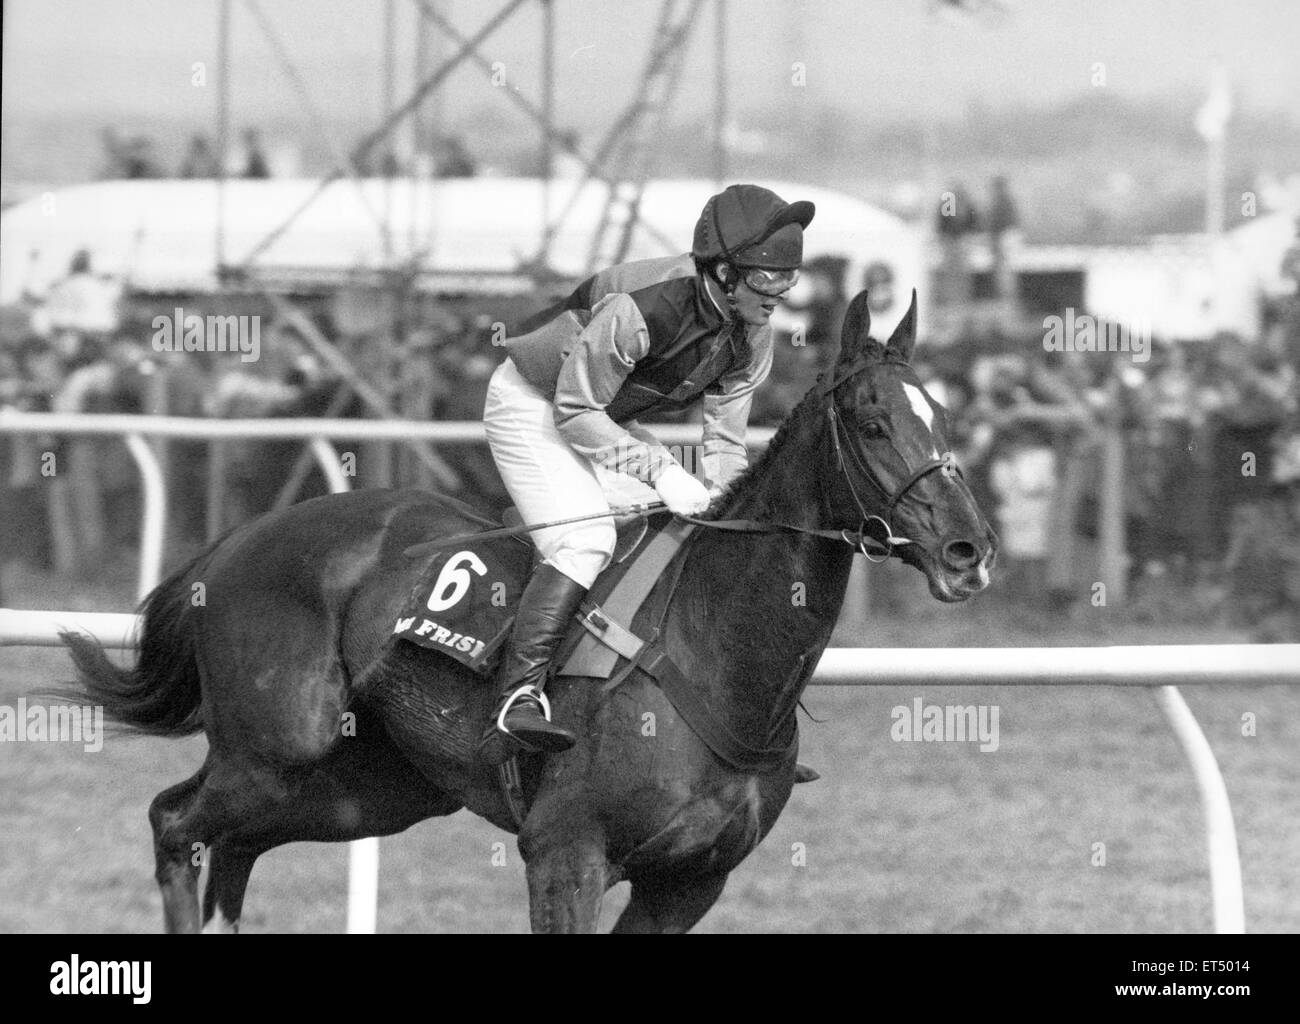 Mister Frisk ridden by Marcus Armytage seen here before the start of the 1990 Grand National. 7th April 1990 - Stock Image